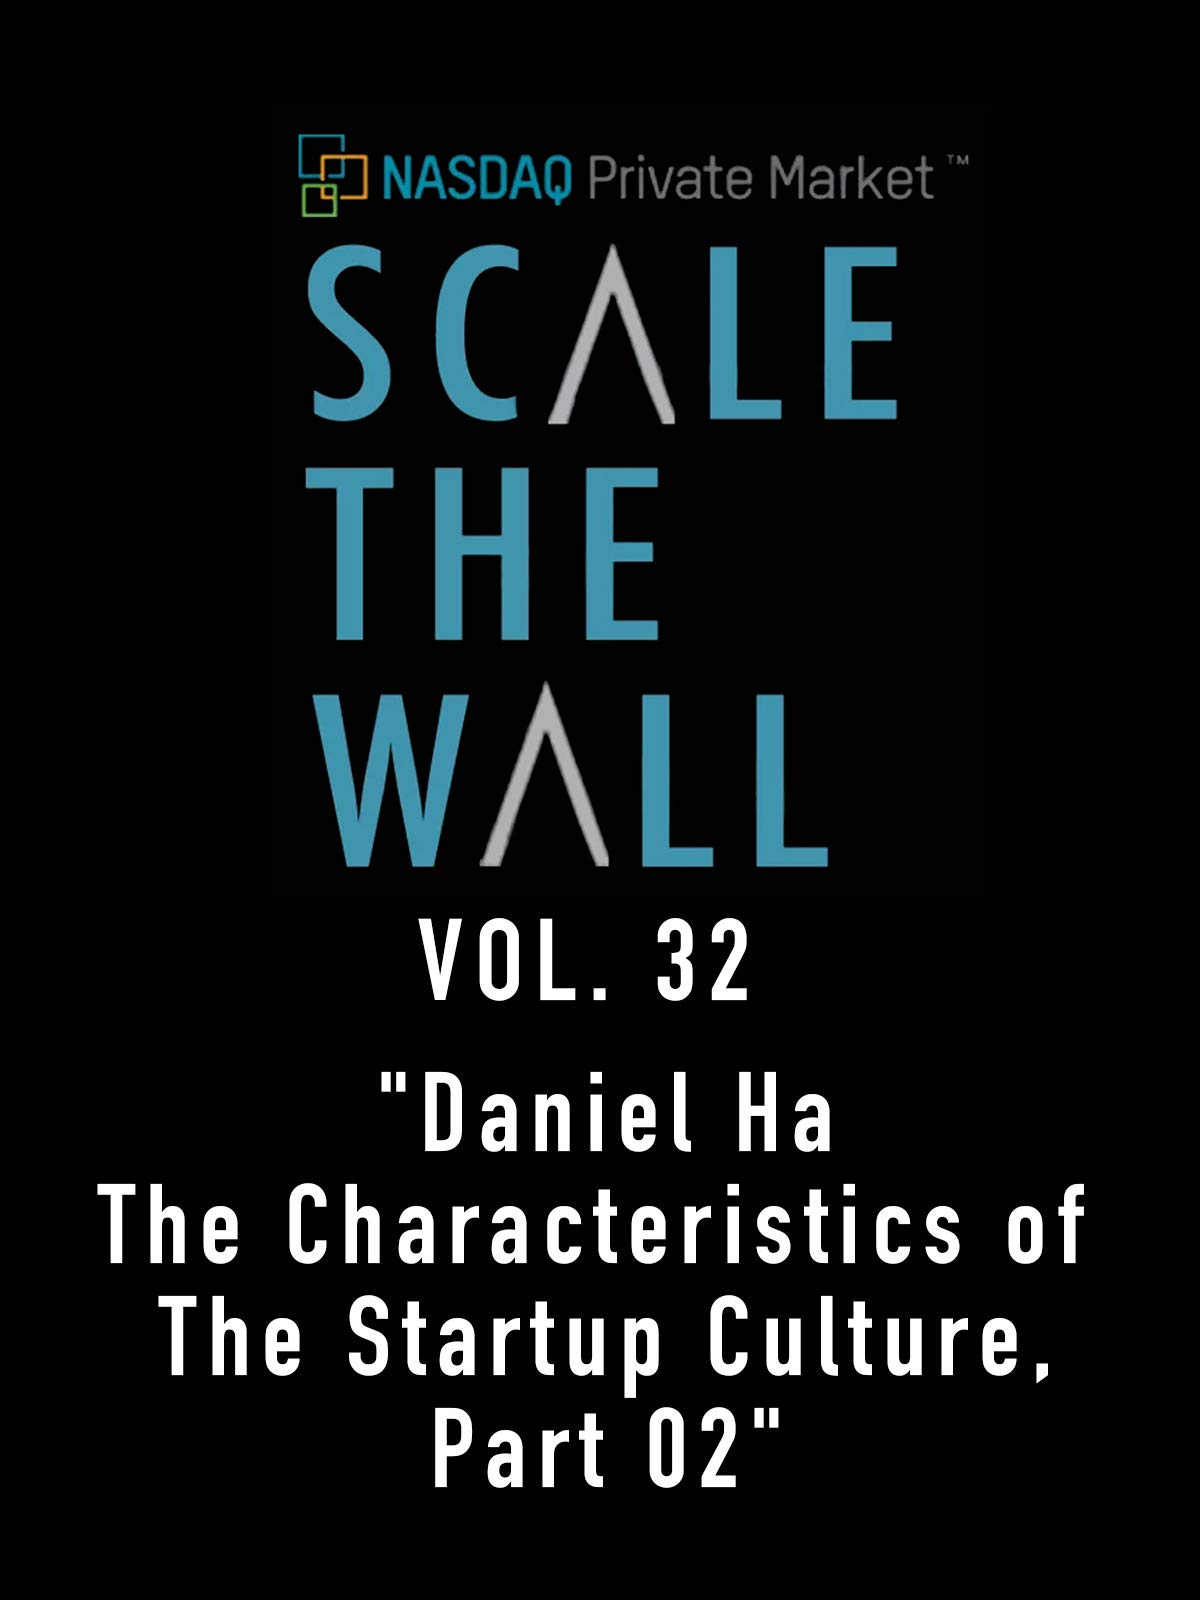 Scale the Wall Vol. 32